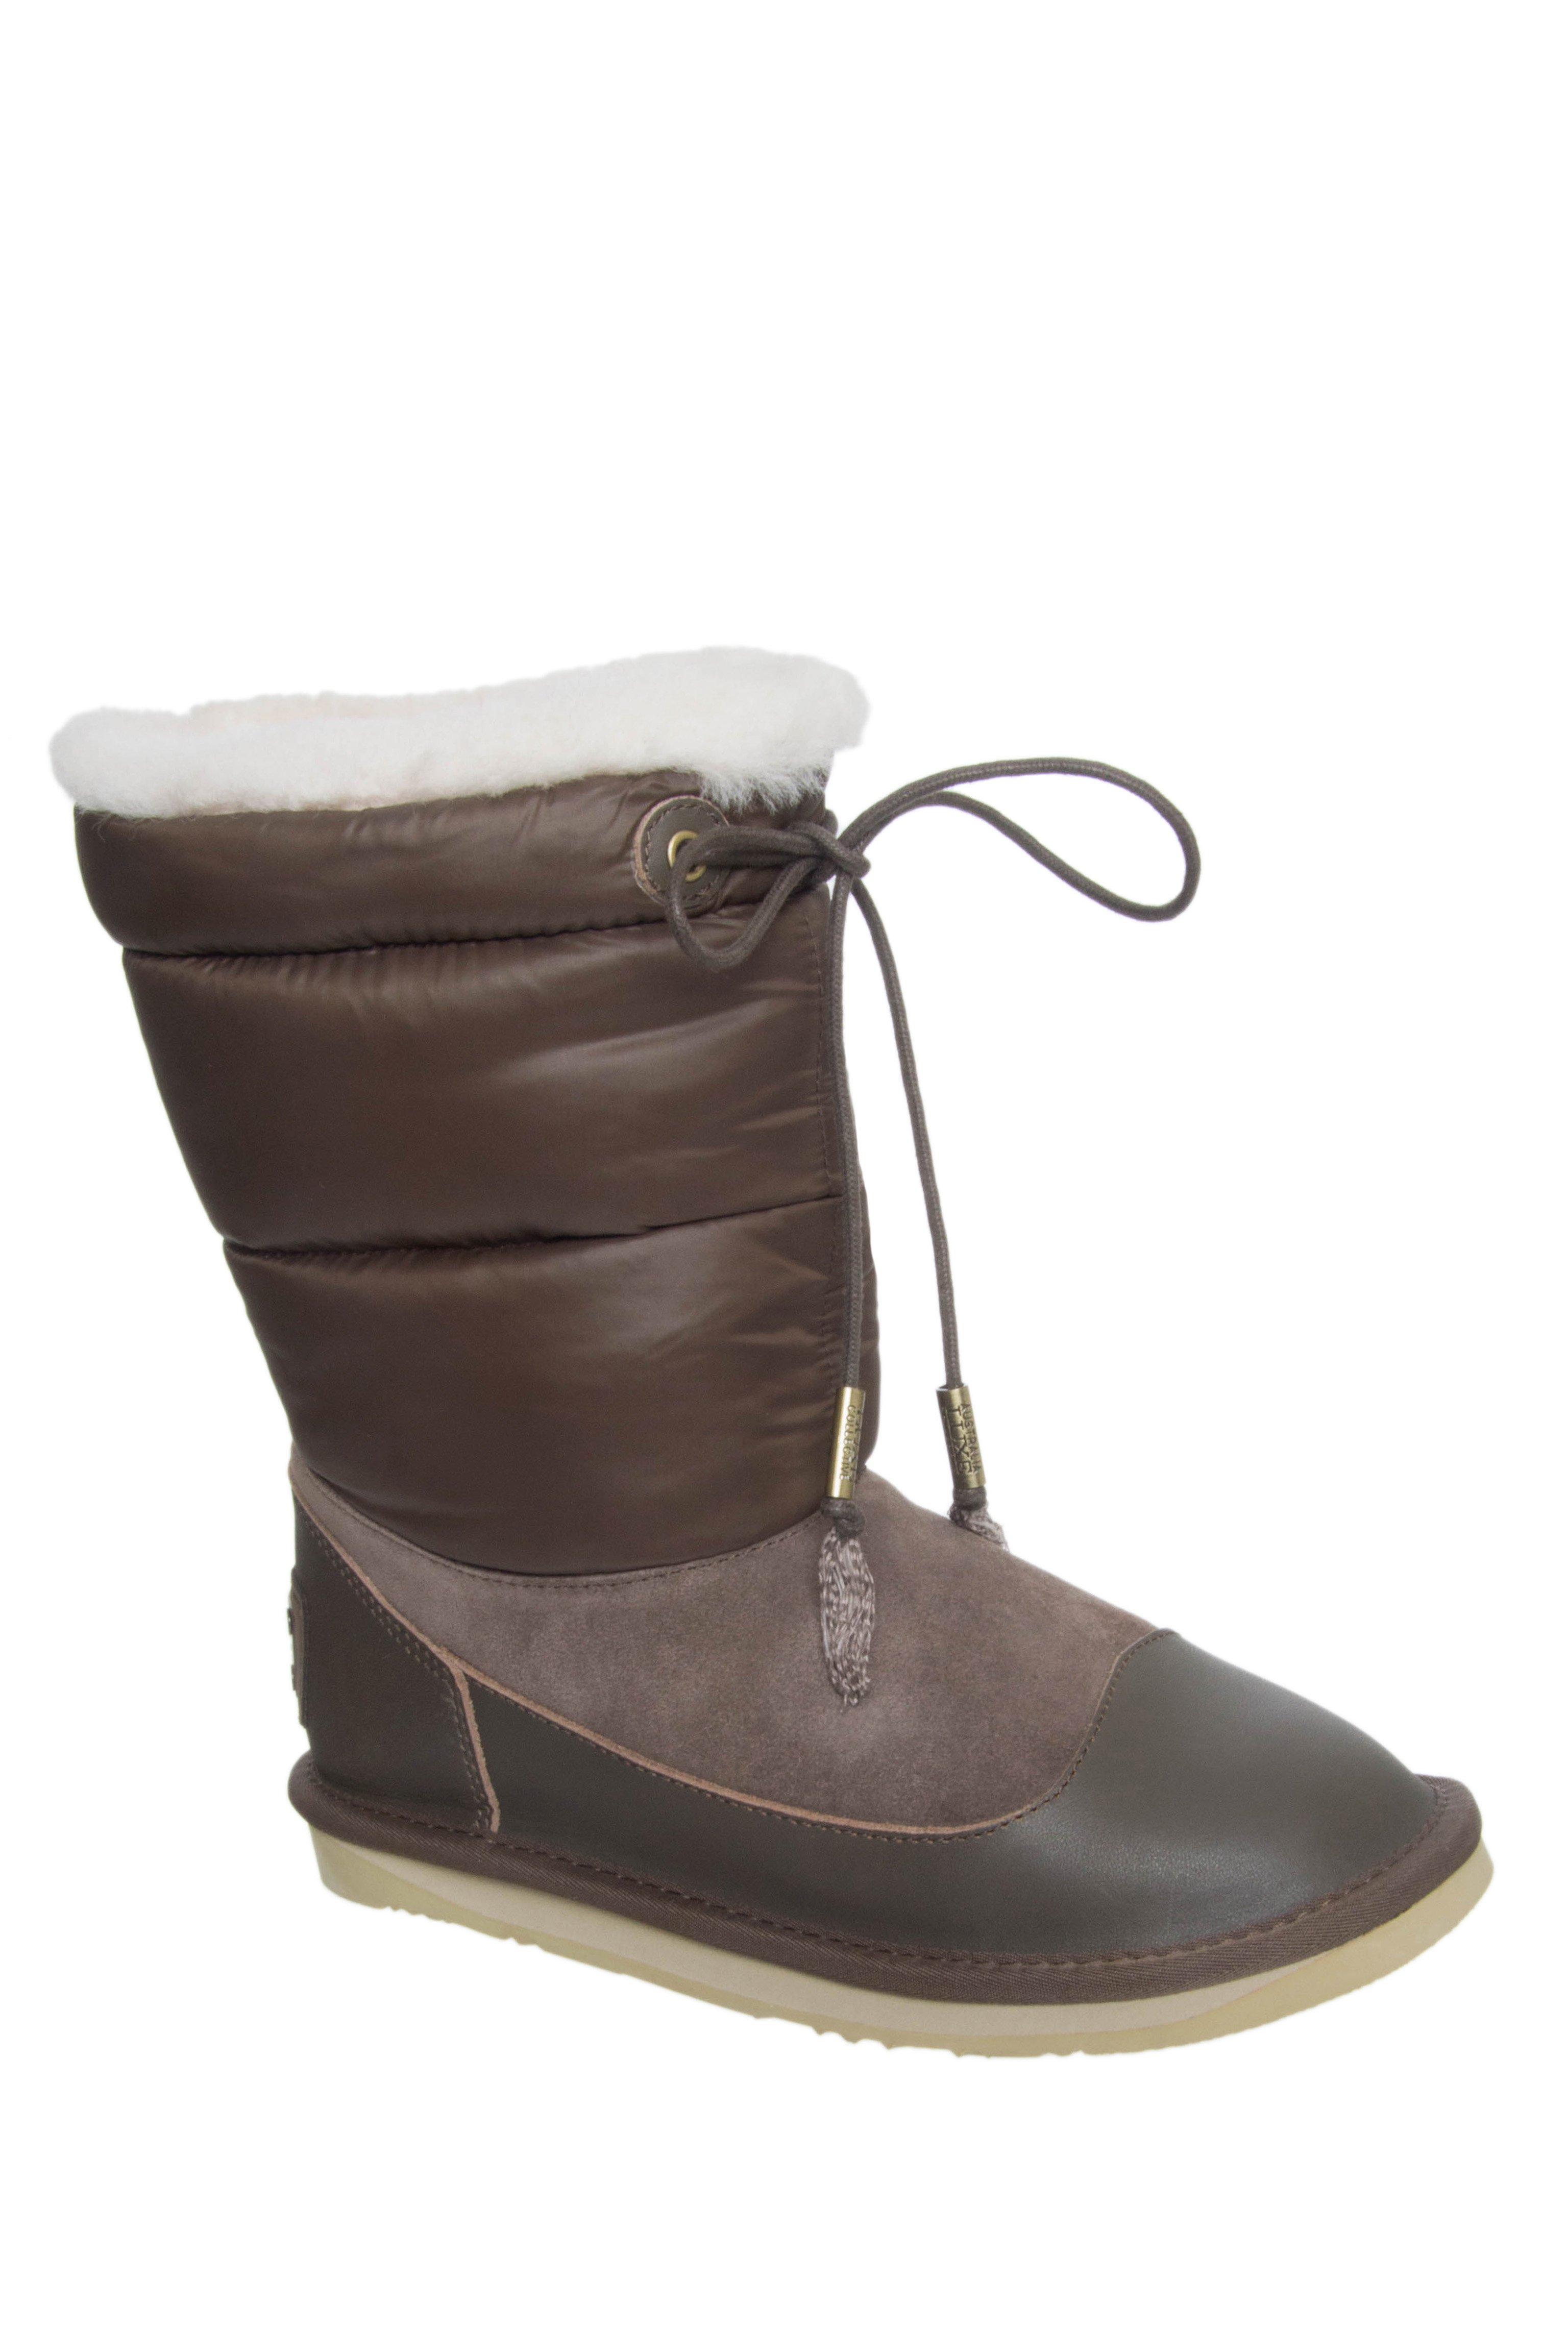 Australia Luxe Earth Nylon Short Boots - Mortar